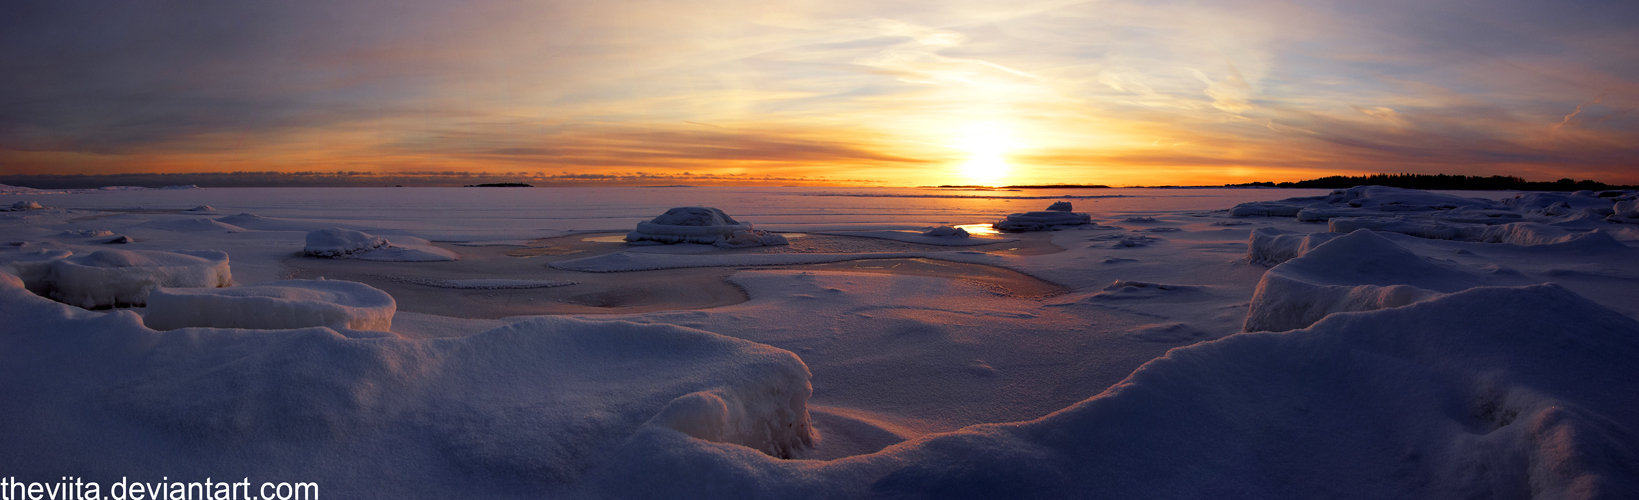 Icy Islet Sunset III by theviita